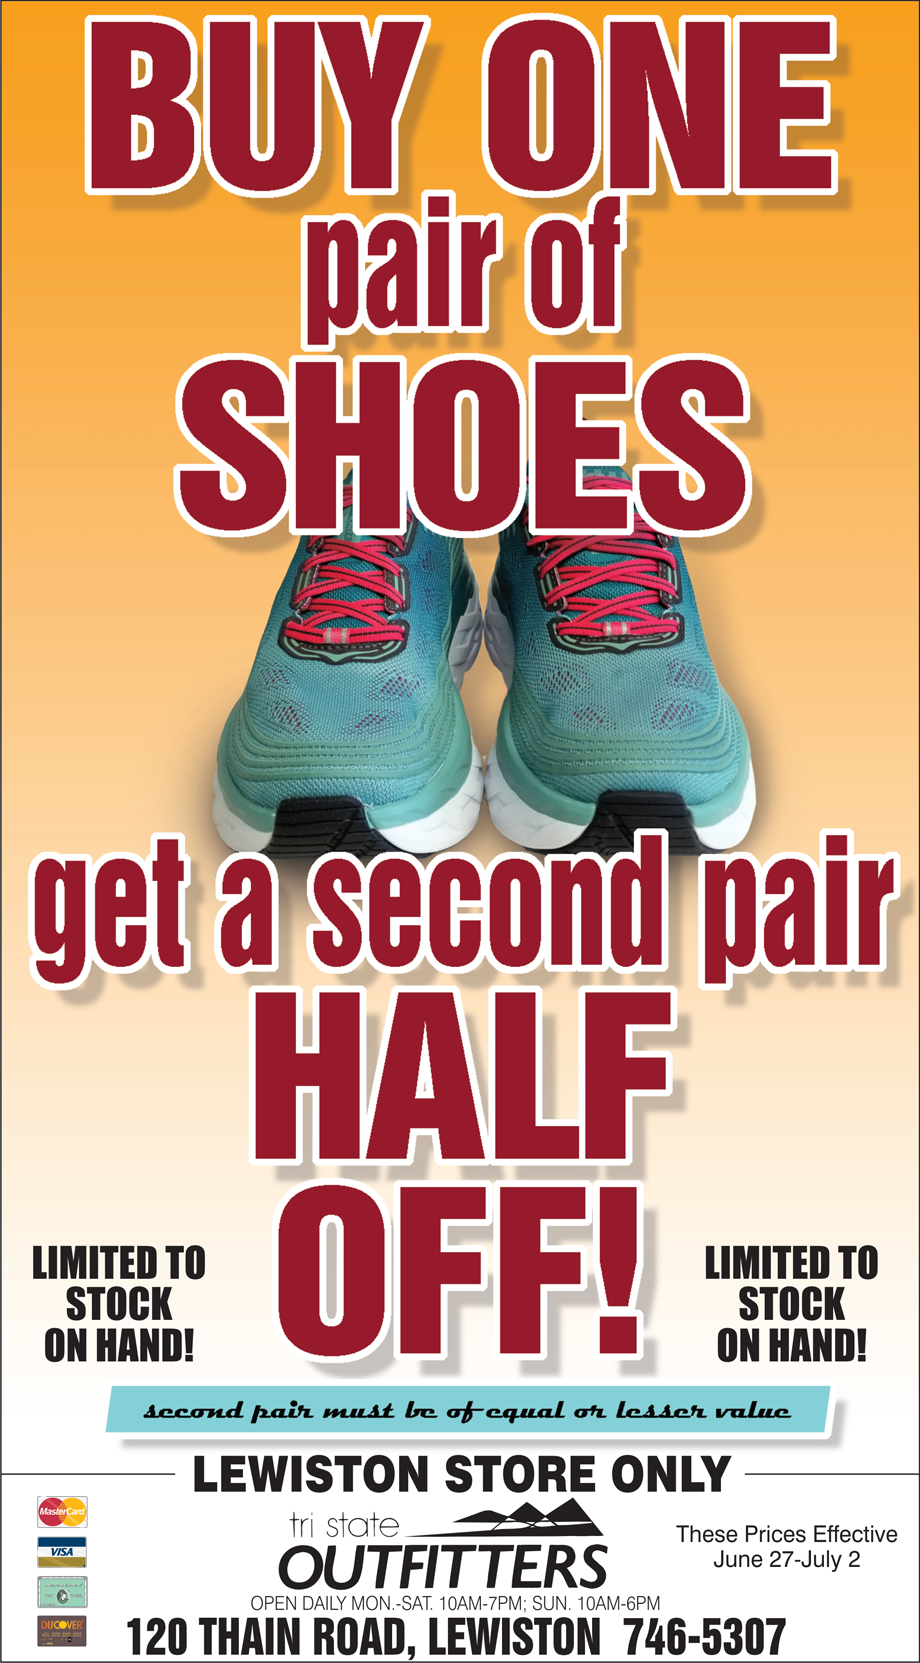 cc20c9b029c Lewiston - Shoe BOGO - Tri-State Outfitters